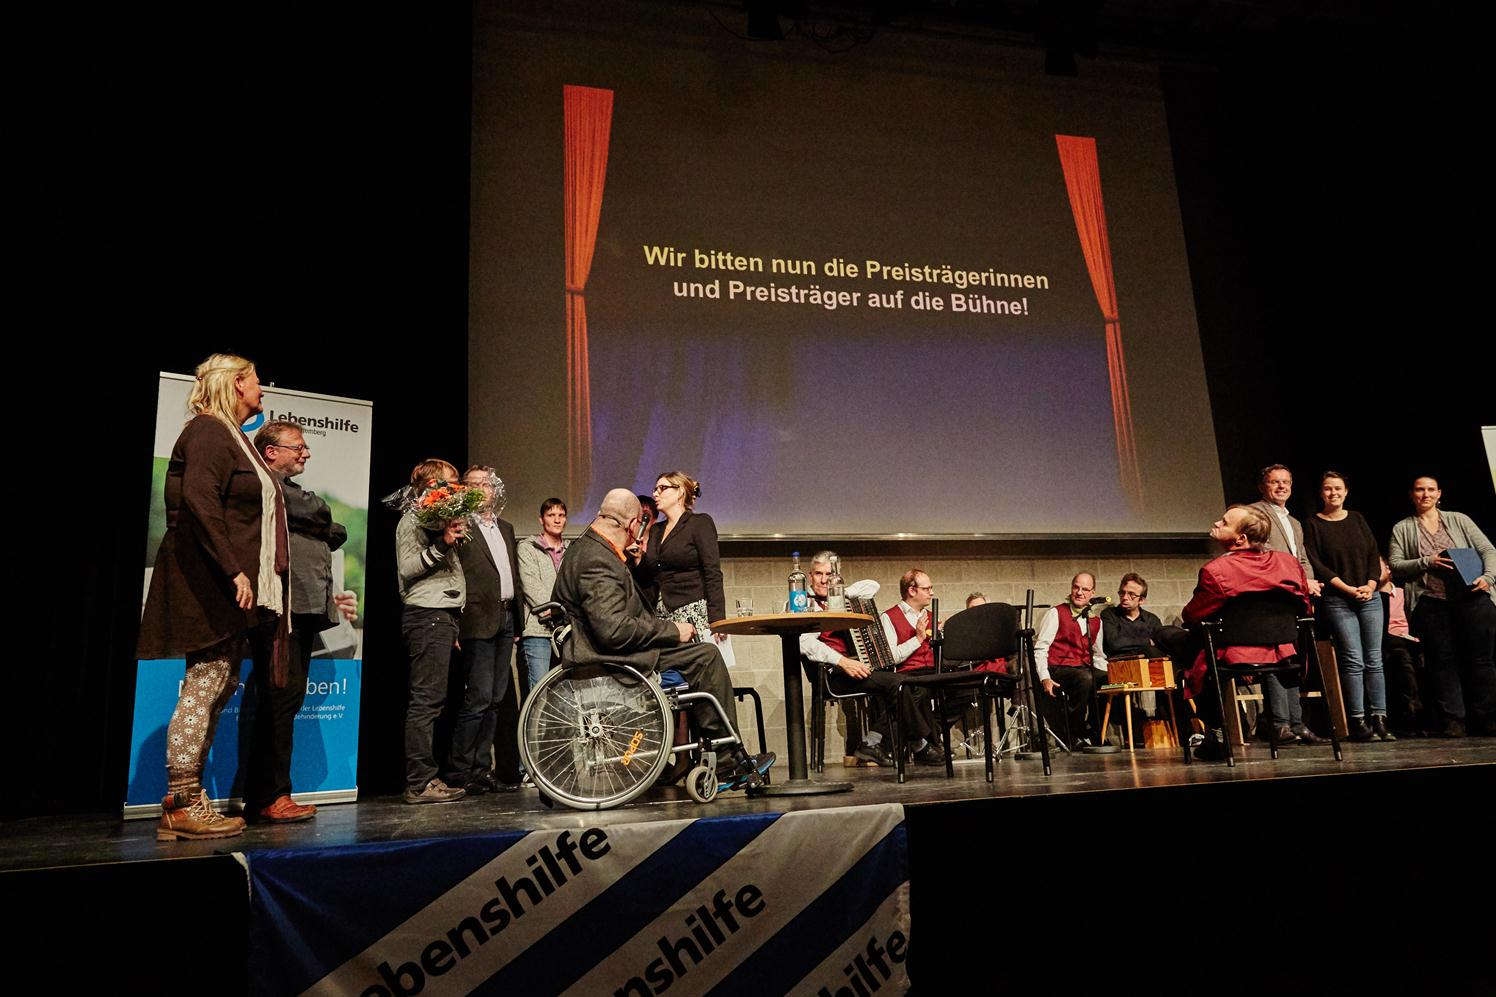 bridgepreis2016_PW_6723 1496 997.jpg - 170.76 KB